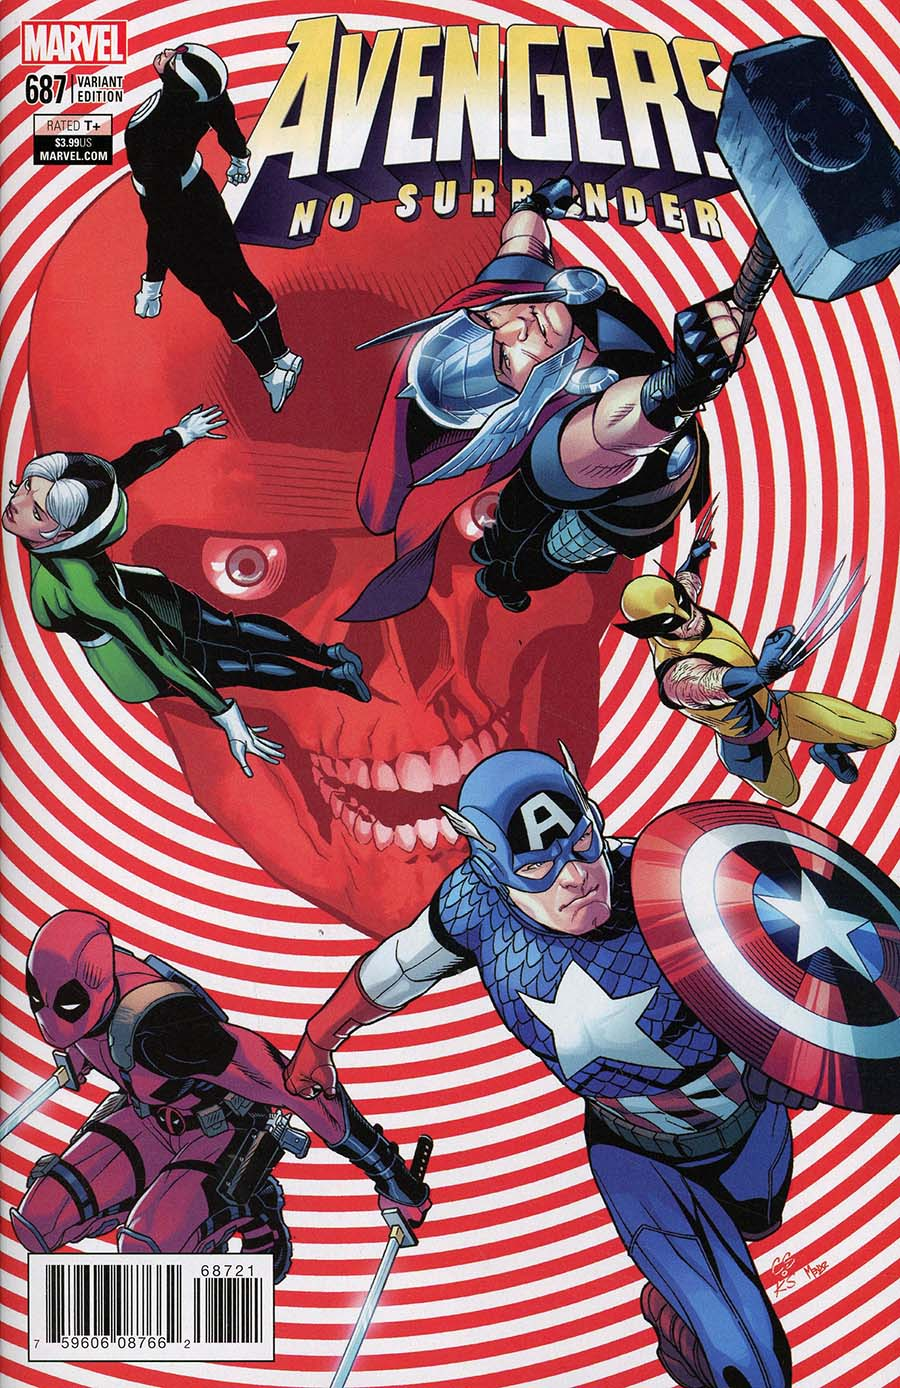 Avengers Vol 6 #687 Cover B Variant Chris Sprouse End Of An Era Cover (No Surrender Part 13)